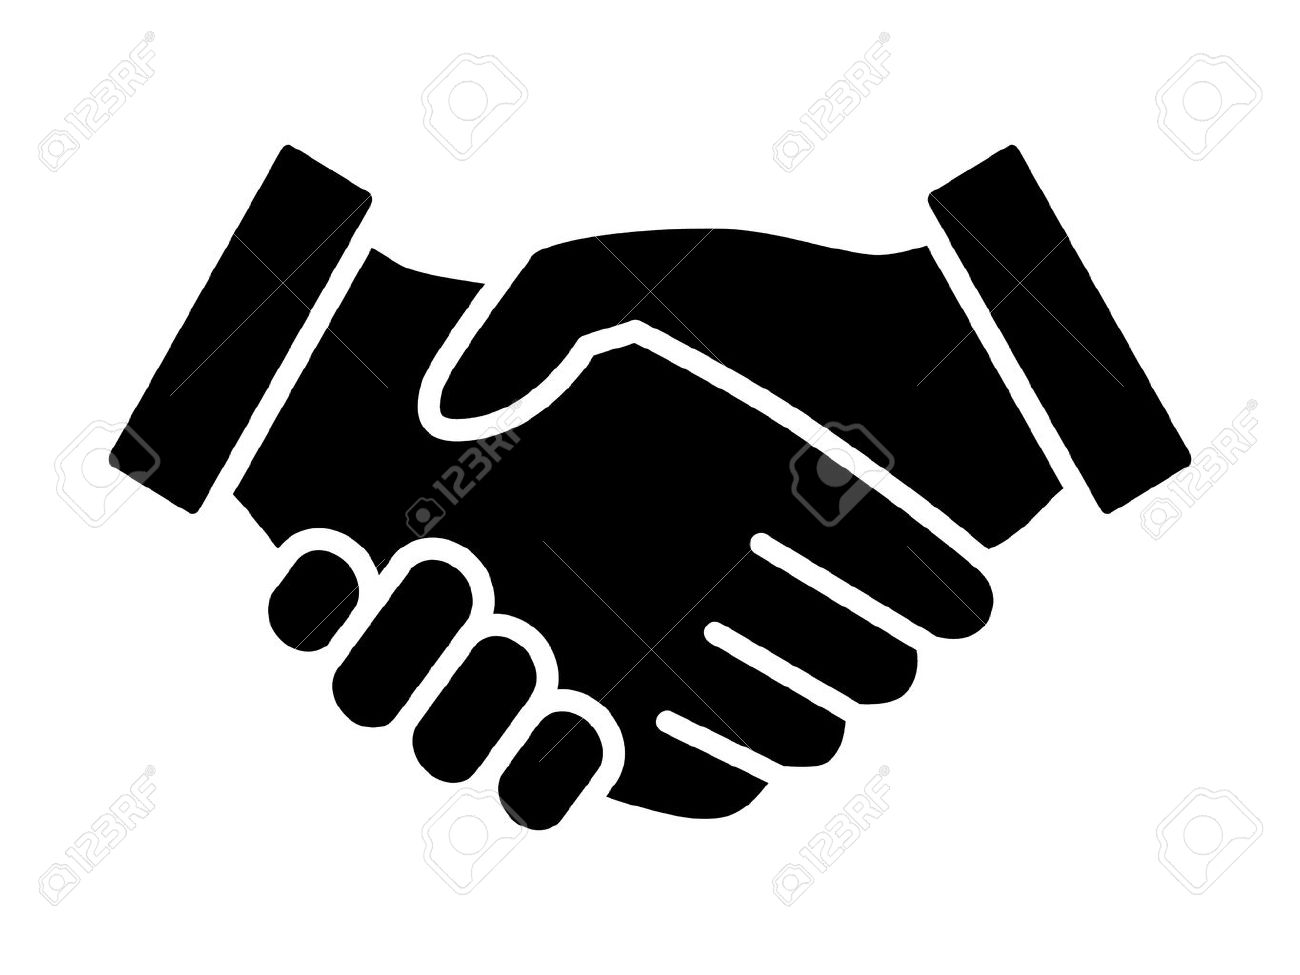 Business agreement handshake or friendly handshake line art icon for apps and websites - 55731519